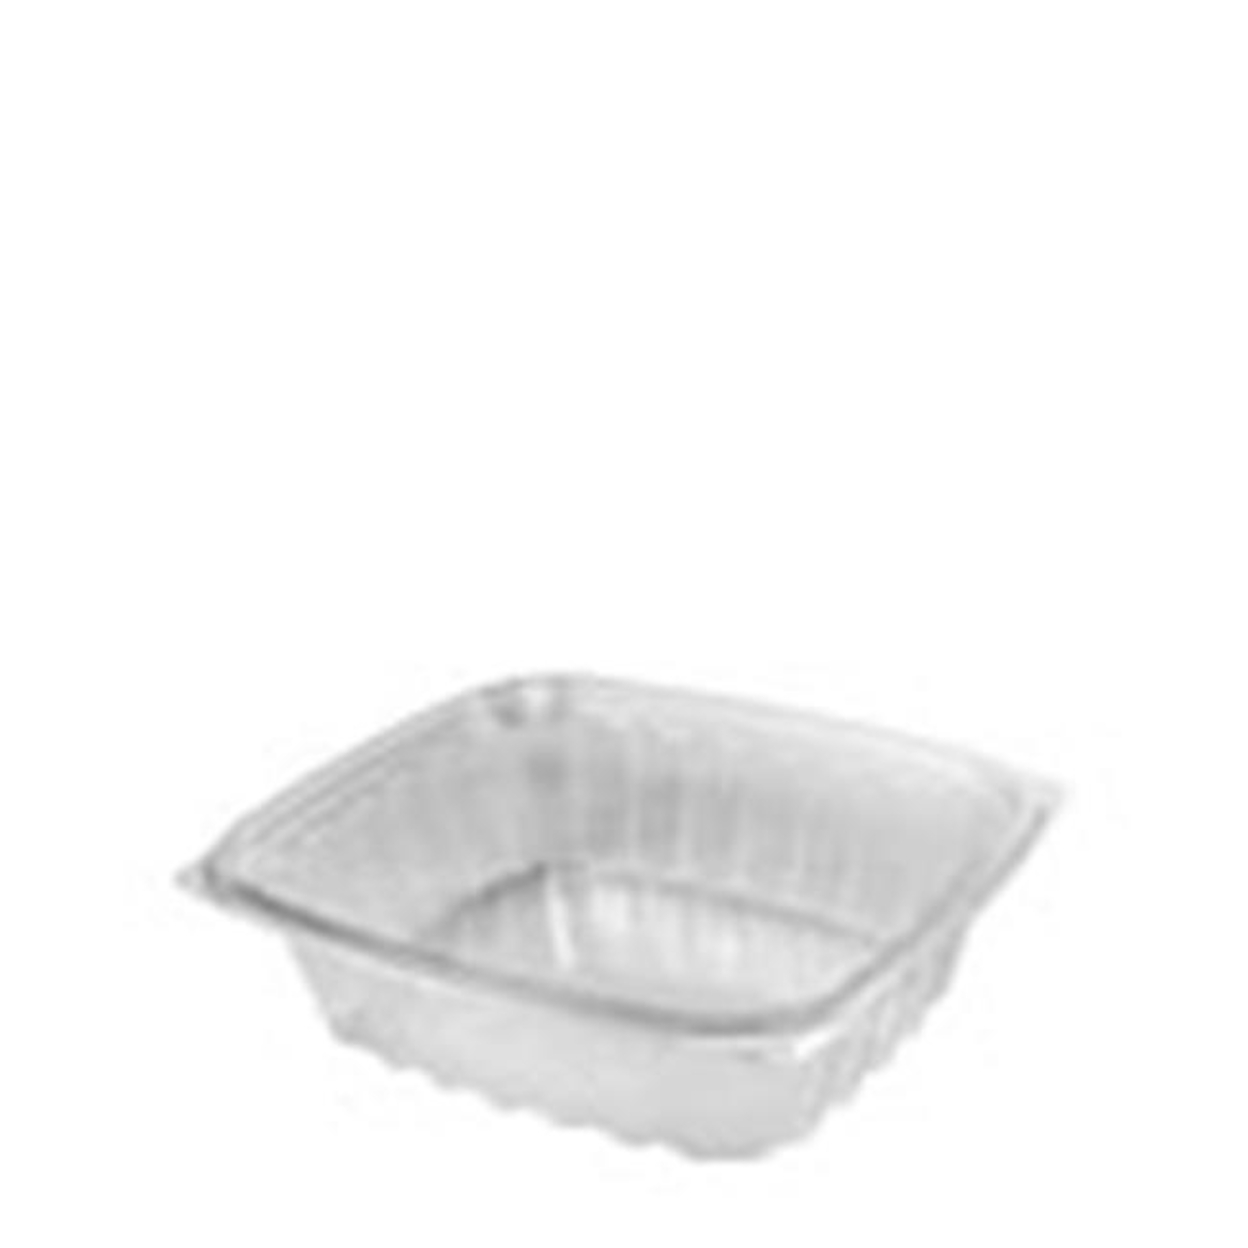 Dart Dccc24Der 24 oz ClearPac Containers 5a40425ee224613a7c30d470